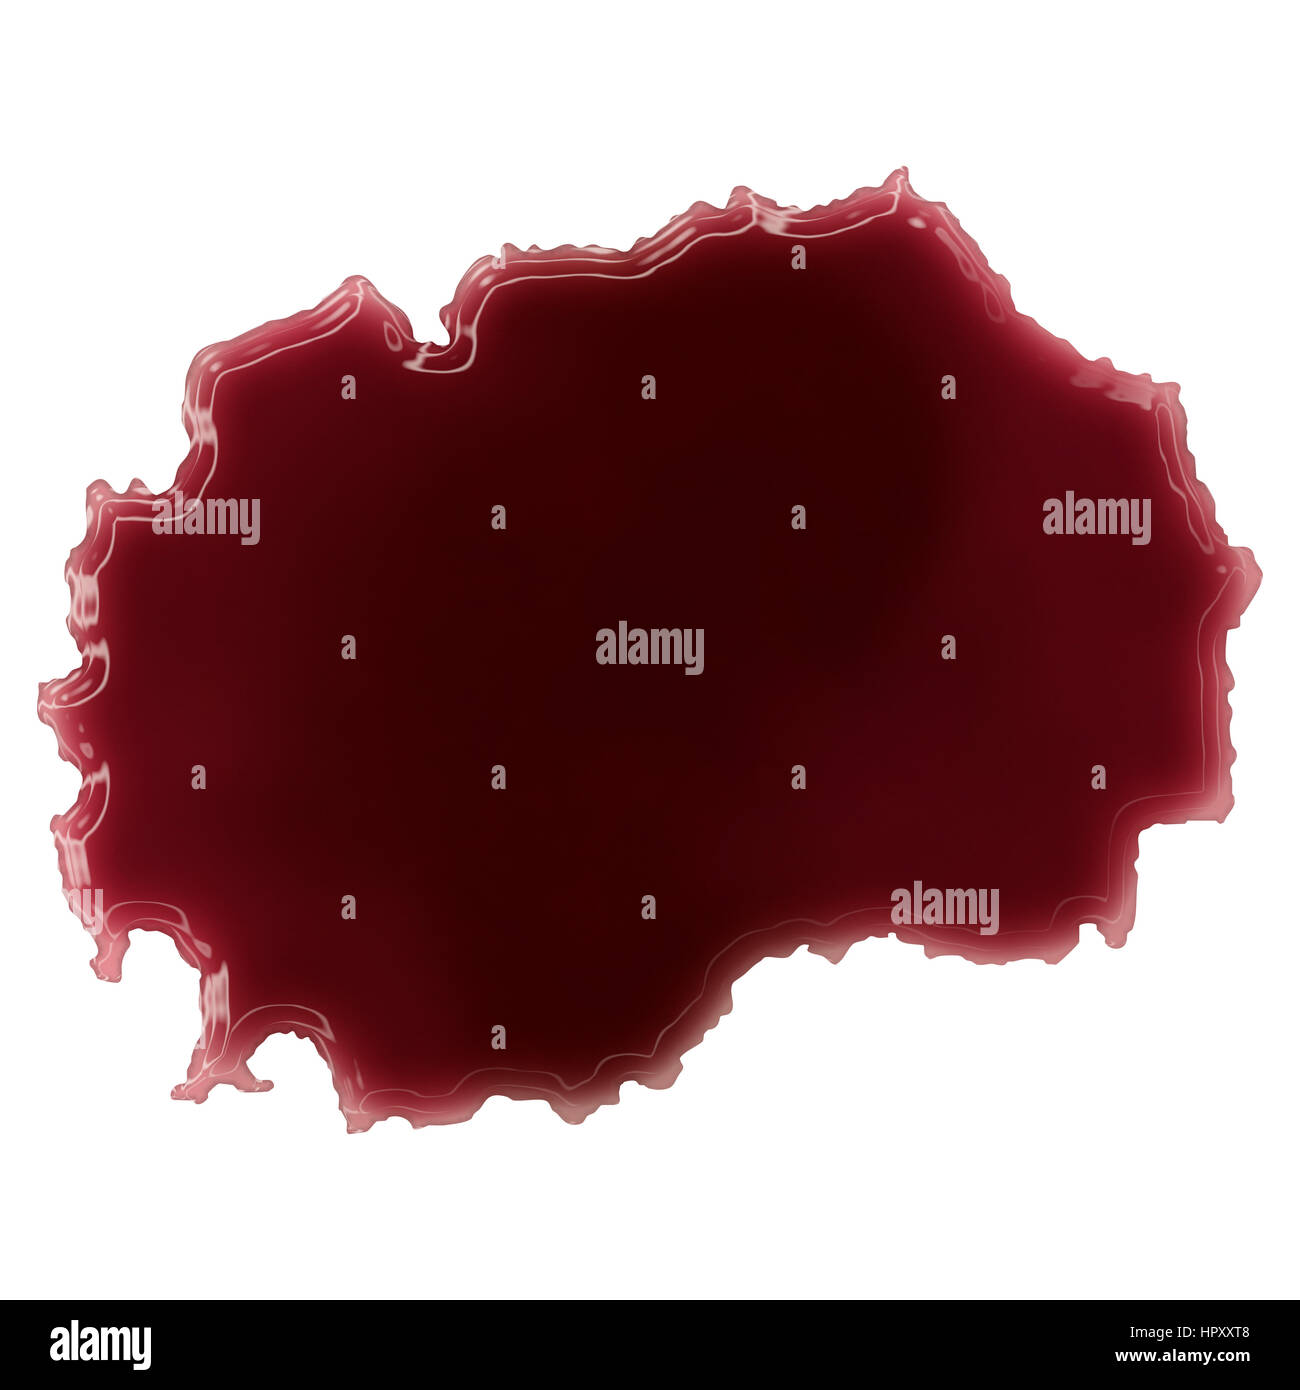 Pool of blood (or wine) that formed the shape of Macedonia. (series) - Stock Image